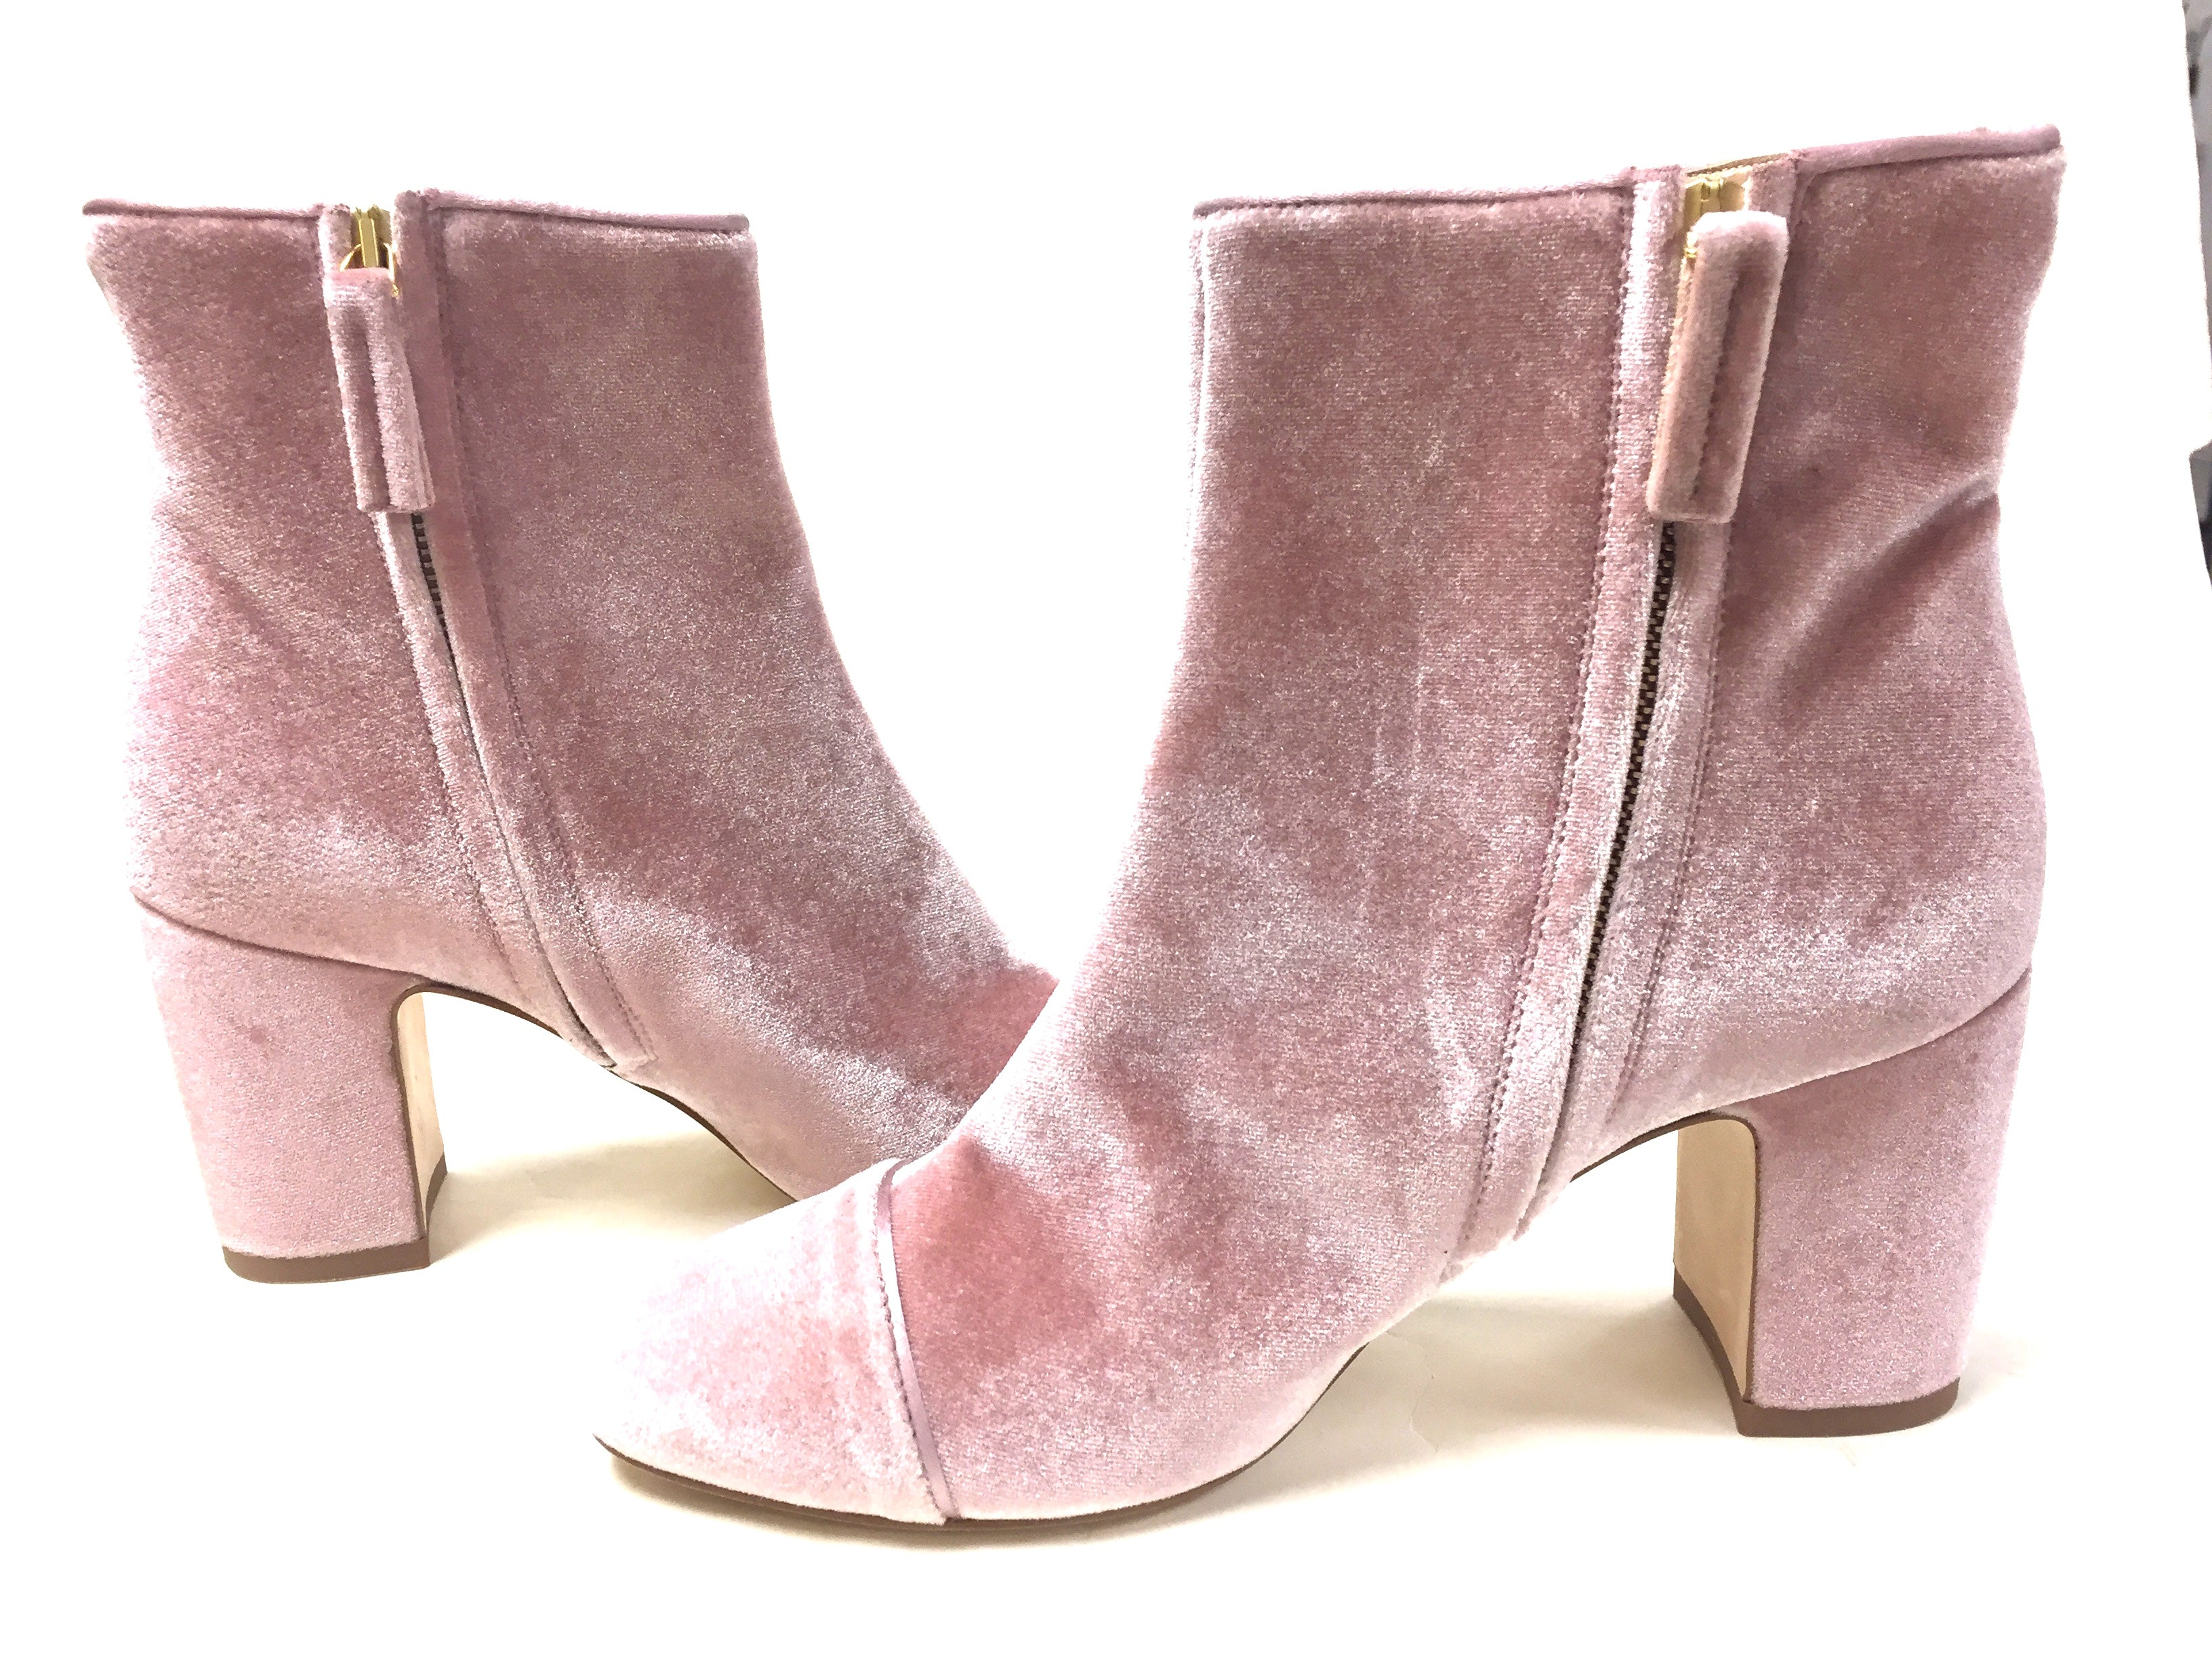 e21415732a1 POLLY PLUME Rose Quartz-Pink Block Heel Ankle Boots Booties Size: EU 37 /  US 7